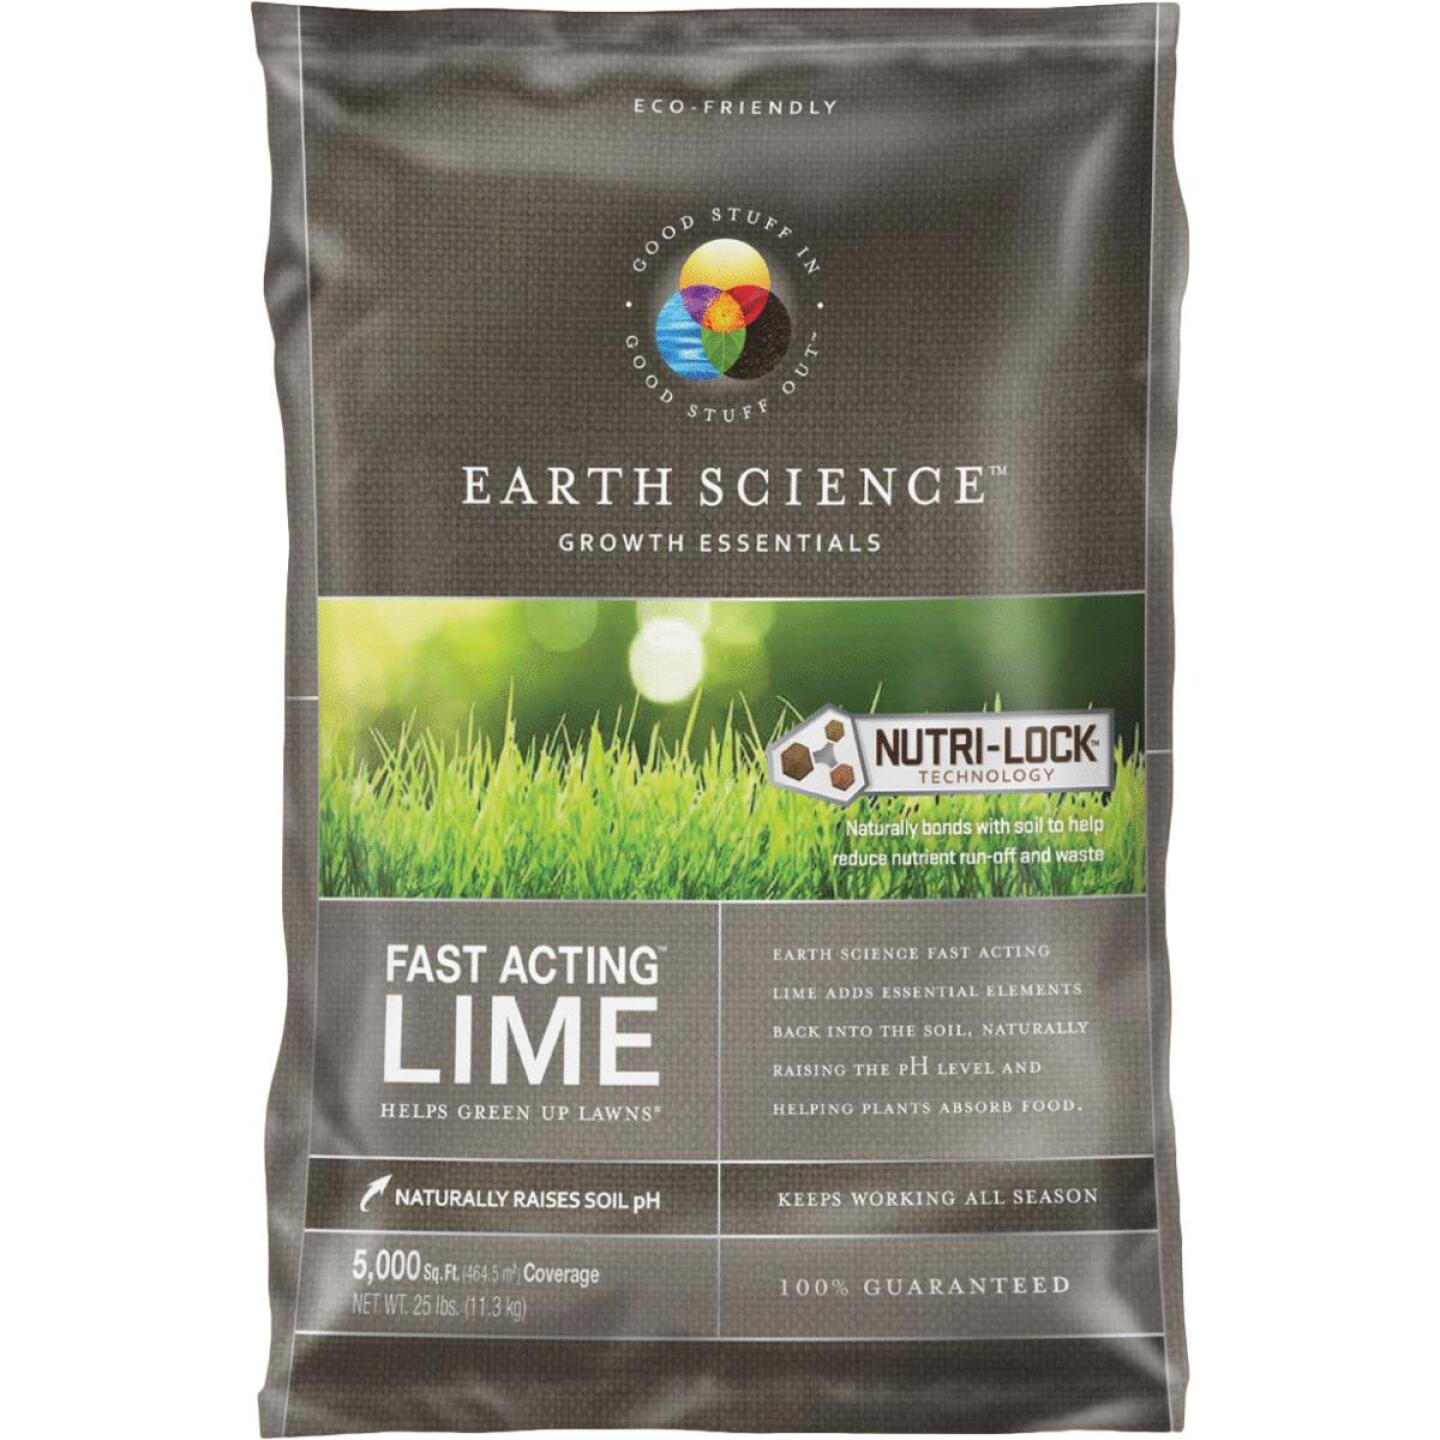 Earth Science Fast Acting Lime, 25 Lb. Image 1